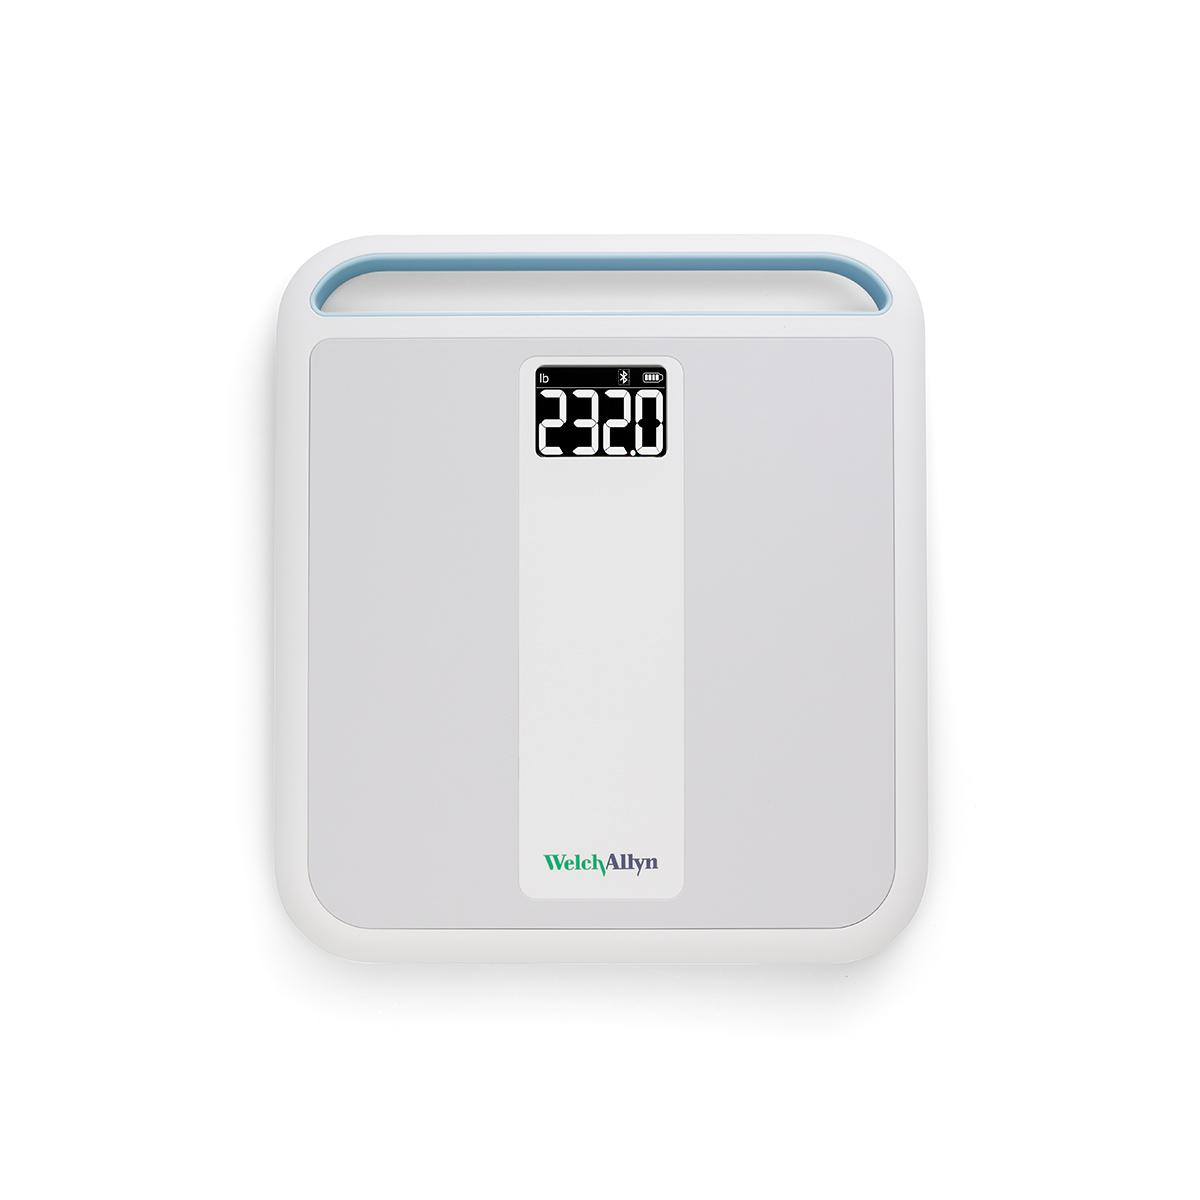 Welch Allyn Home Scale overhead view